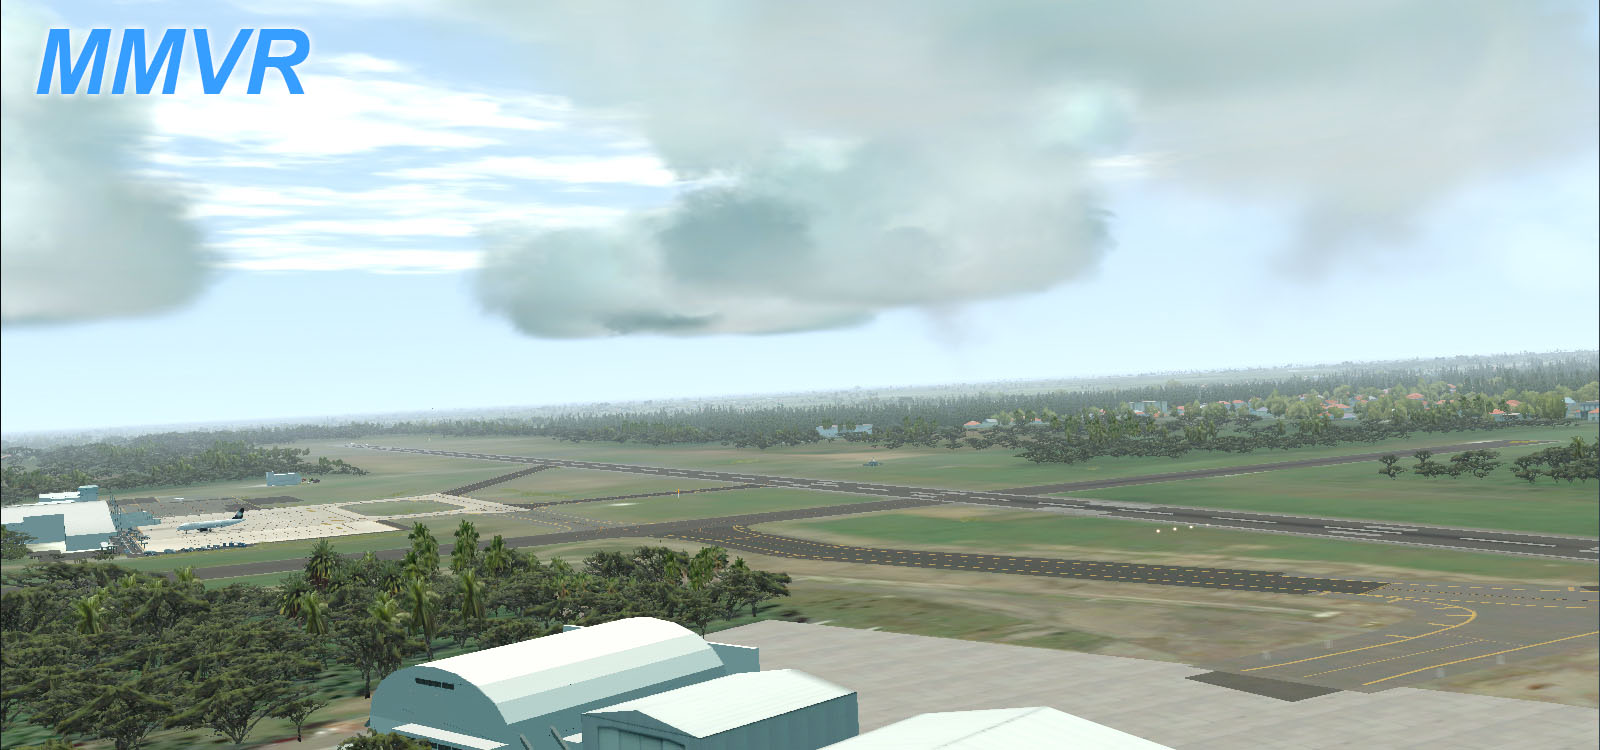 MEX HIGH FLIGHT - MMVR GENERAL HERIBERTO JARA VERACRUZ INTERNATIONAL AIRPORT FSX P3D